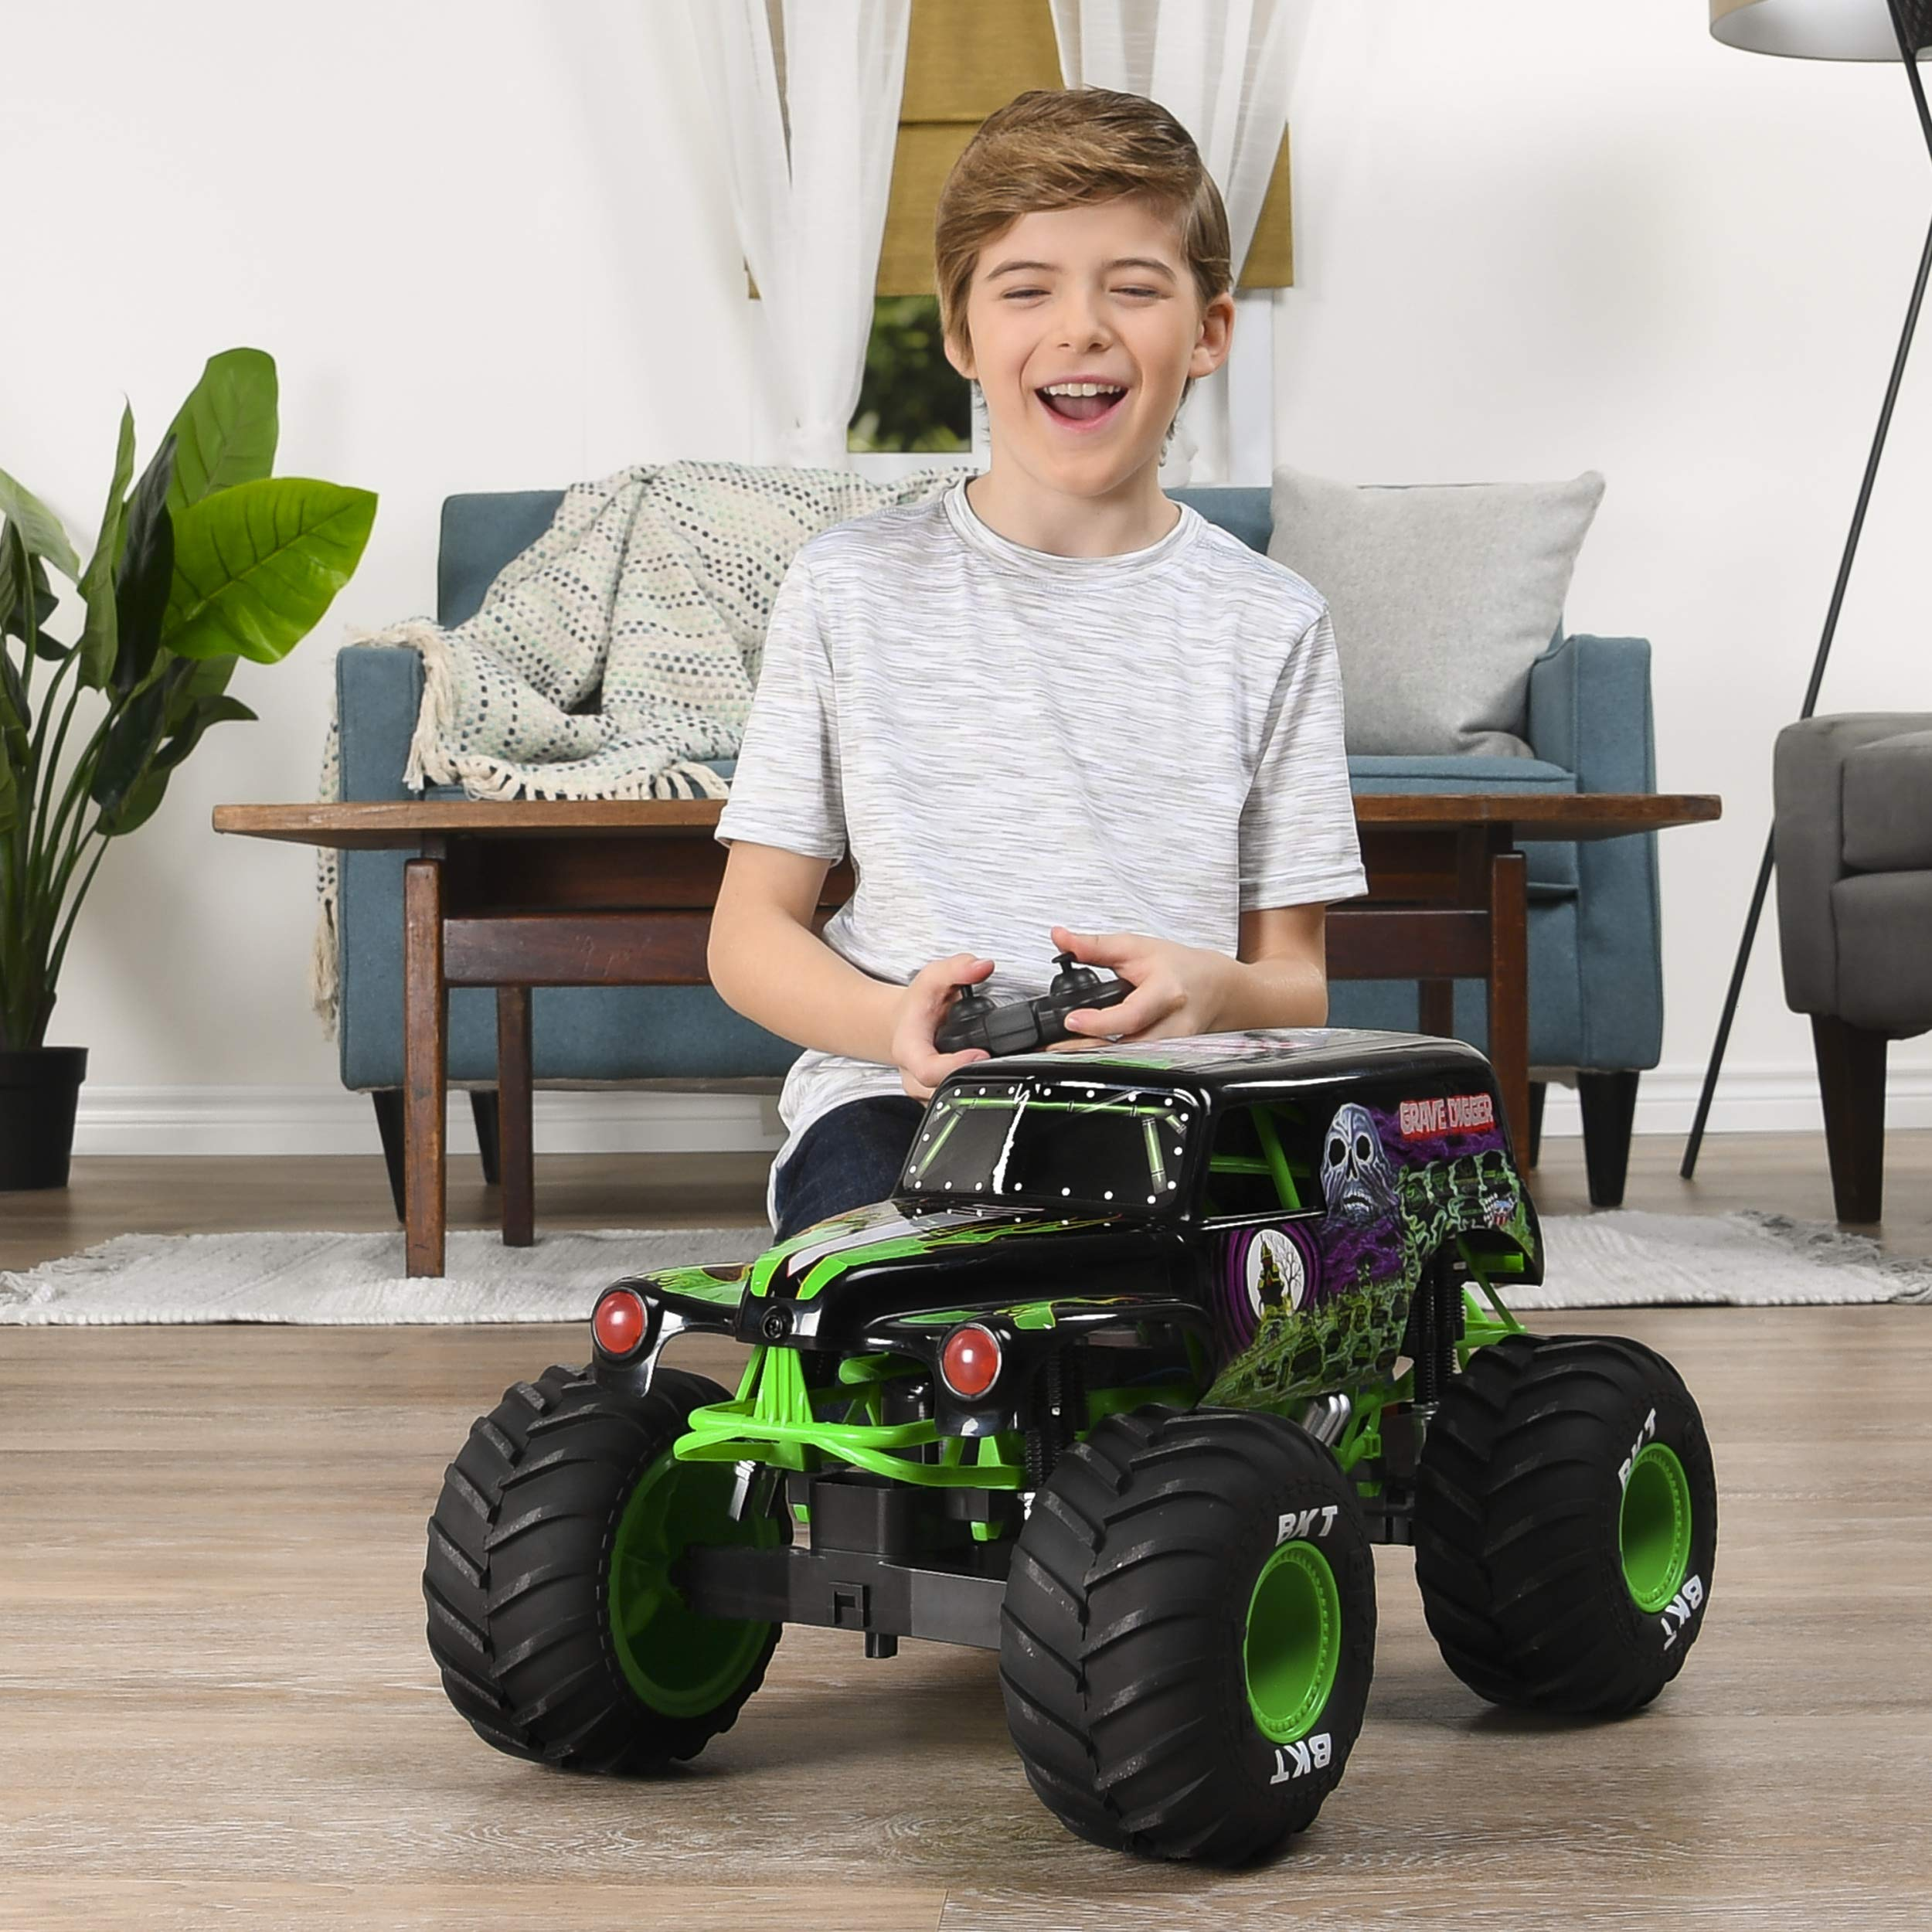 Monster Jam Official Grave Digger Rc Truck 1: 10 Scale with Lights & Sounds For Ages 4 & Up by Monster Jam (Image #3)